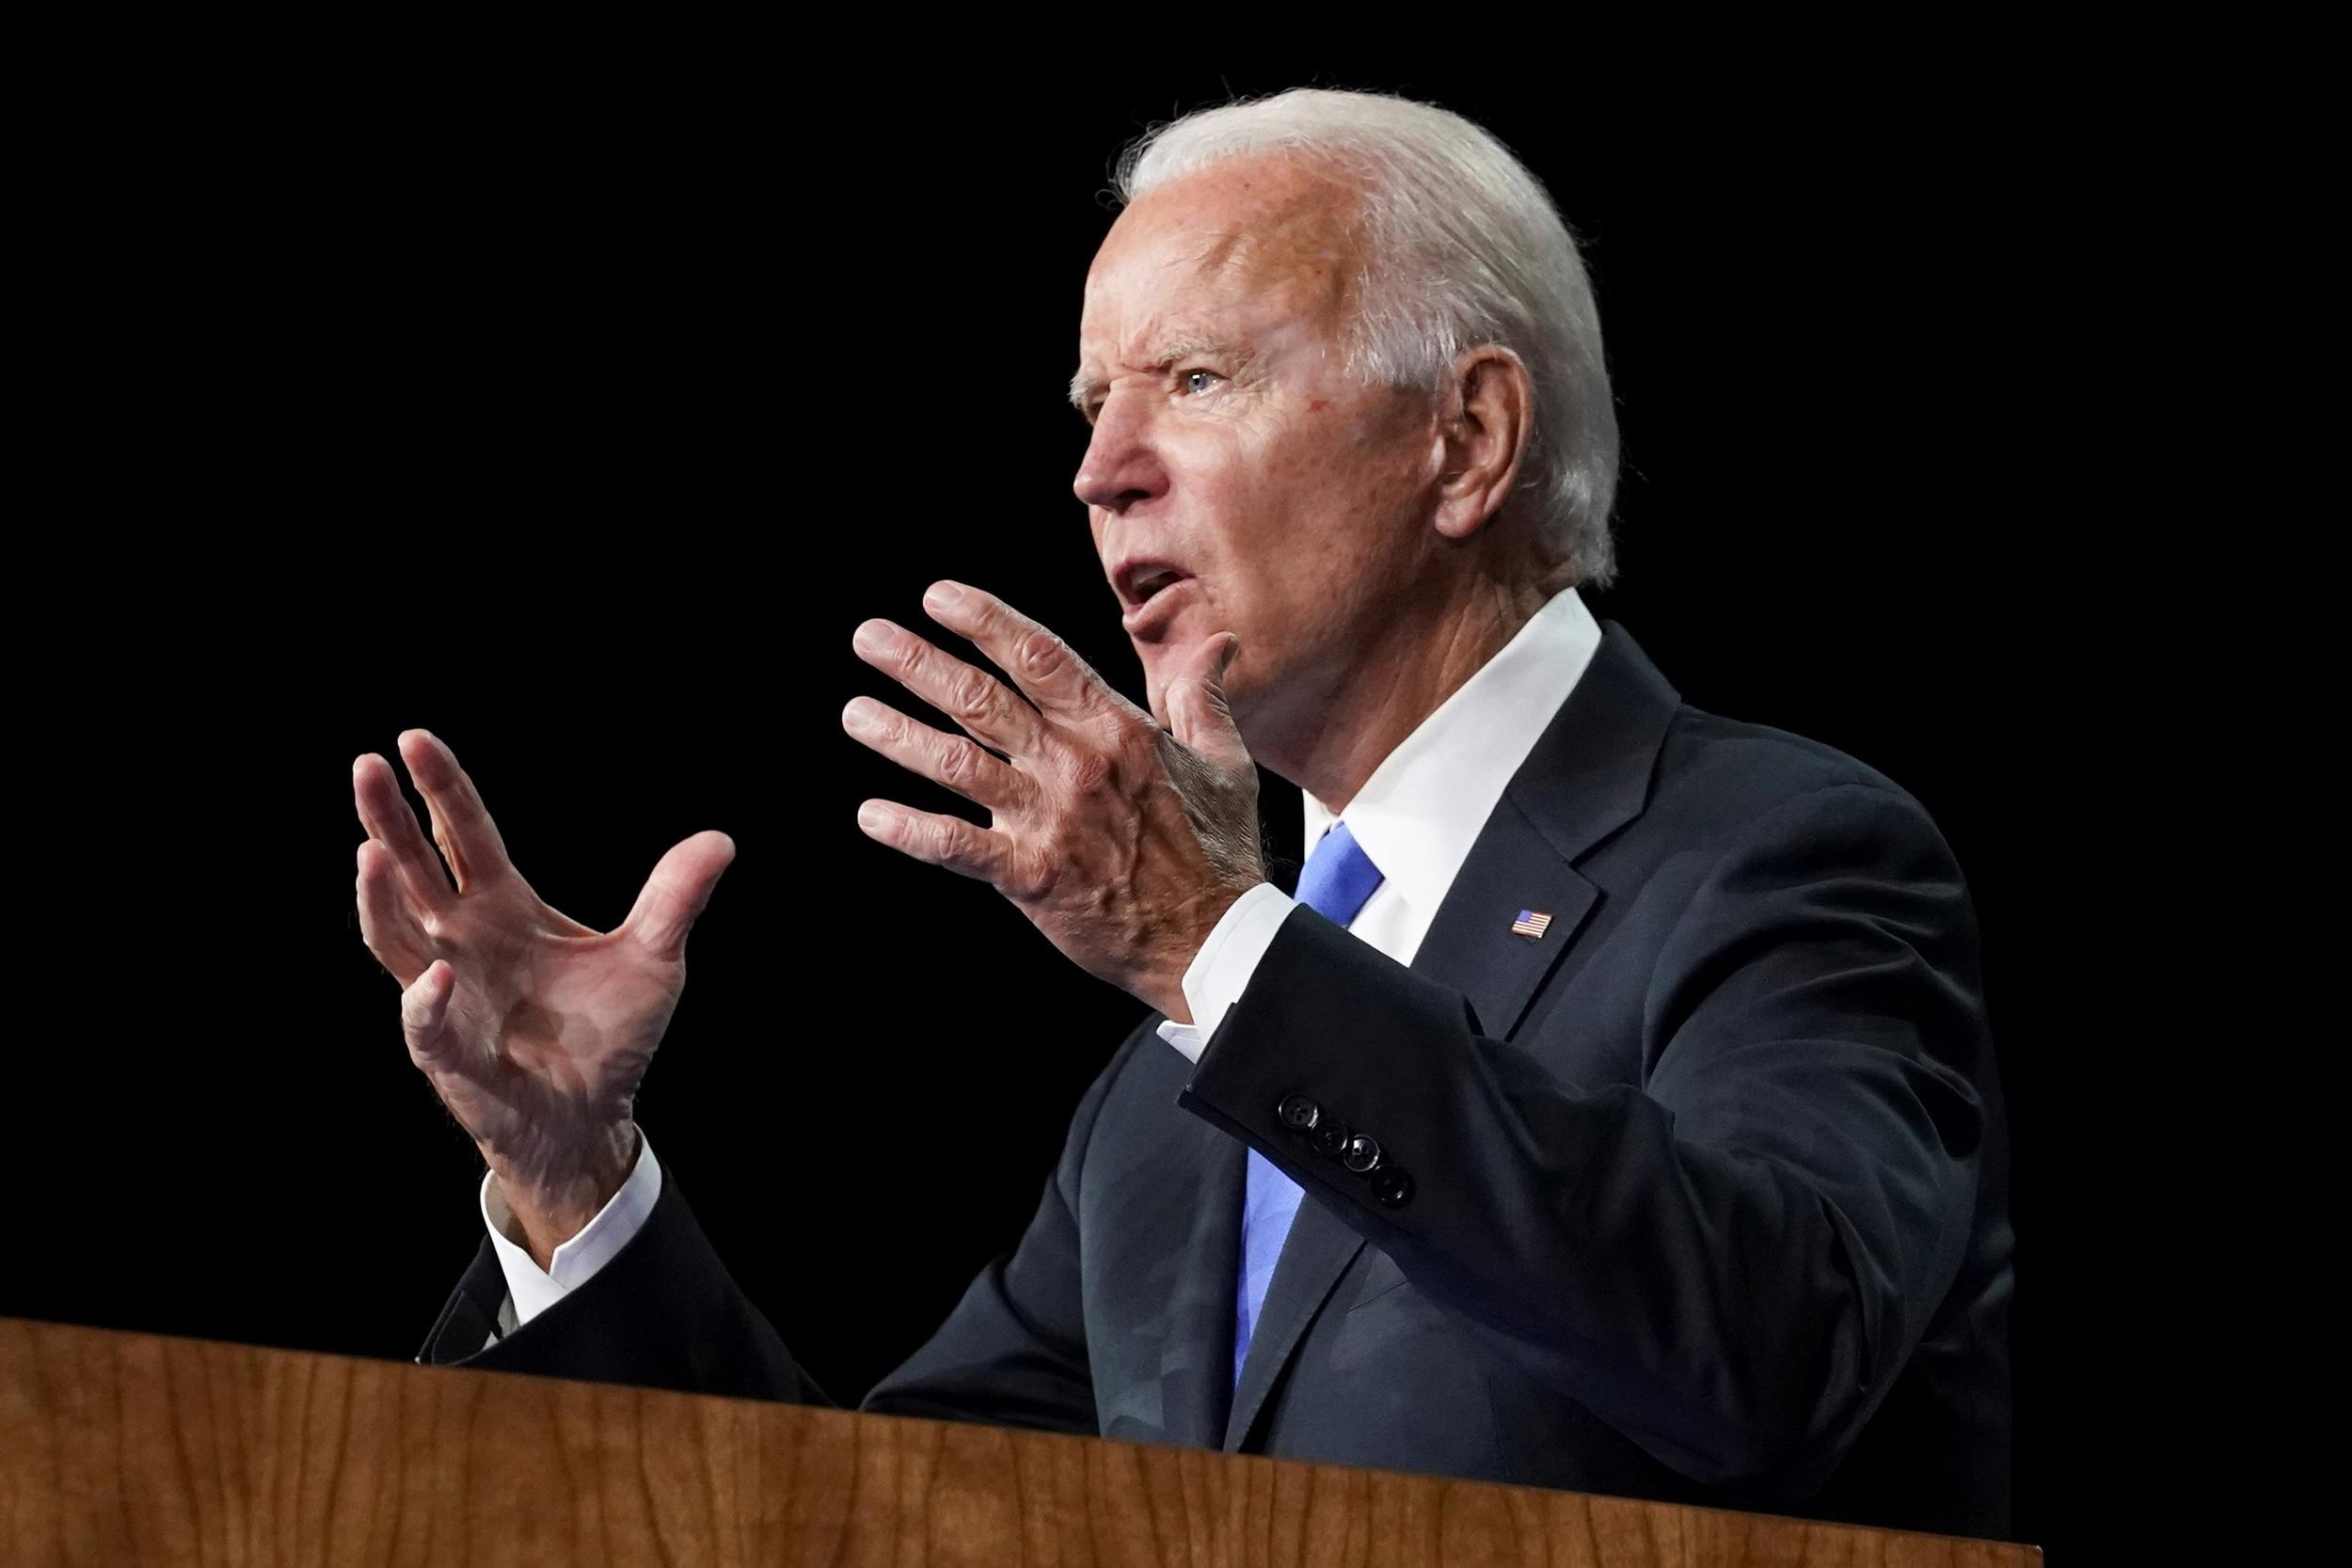 What Has Biden Said About Protests, Violence, Riots?